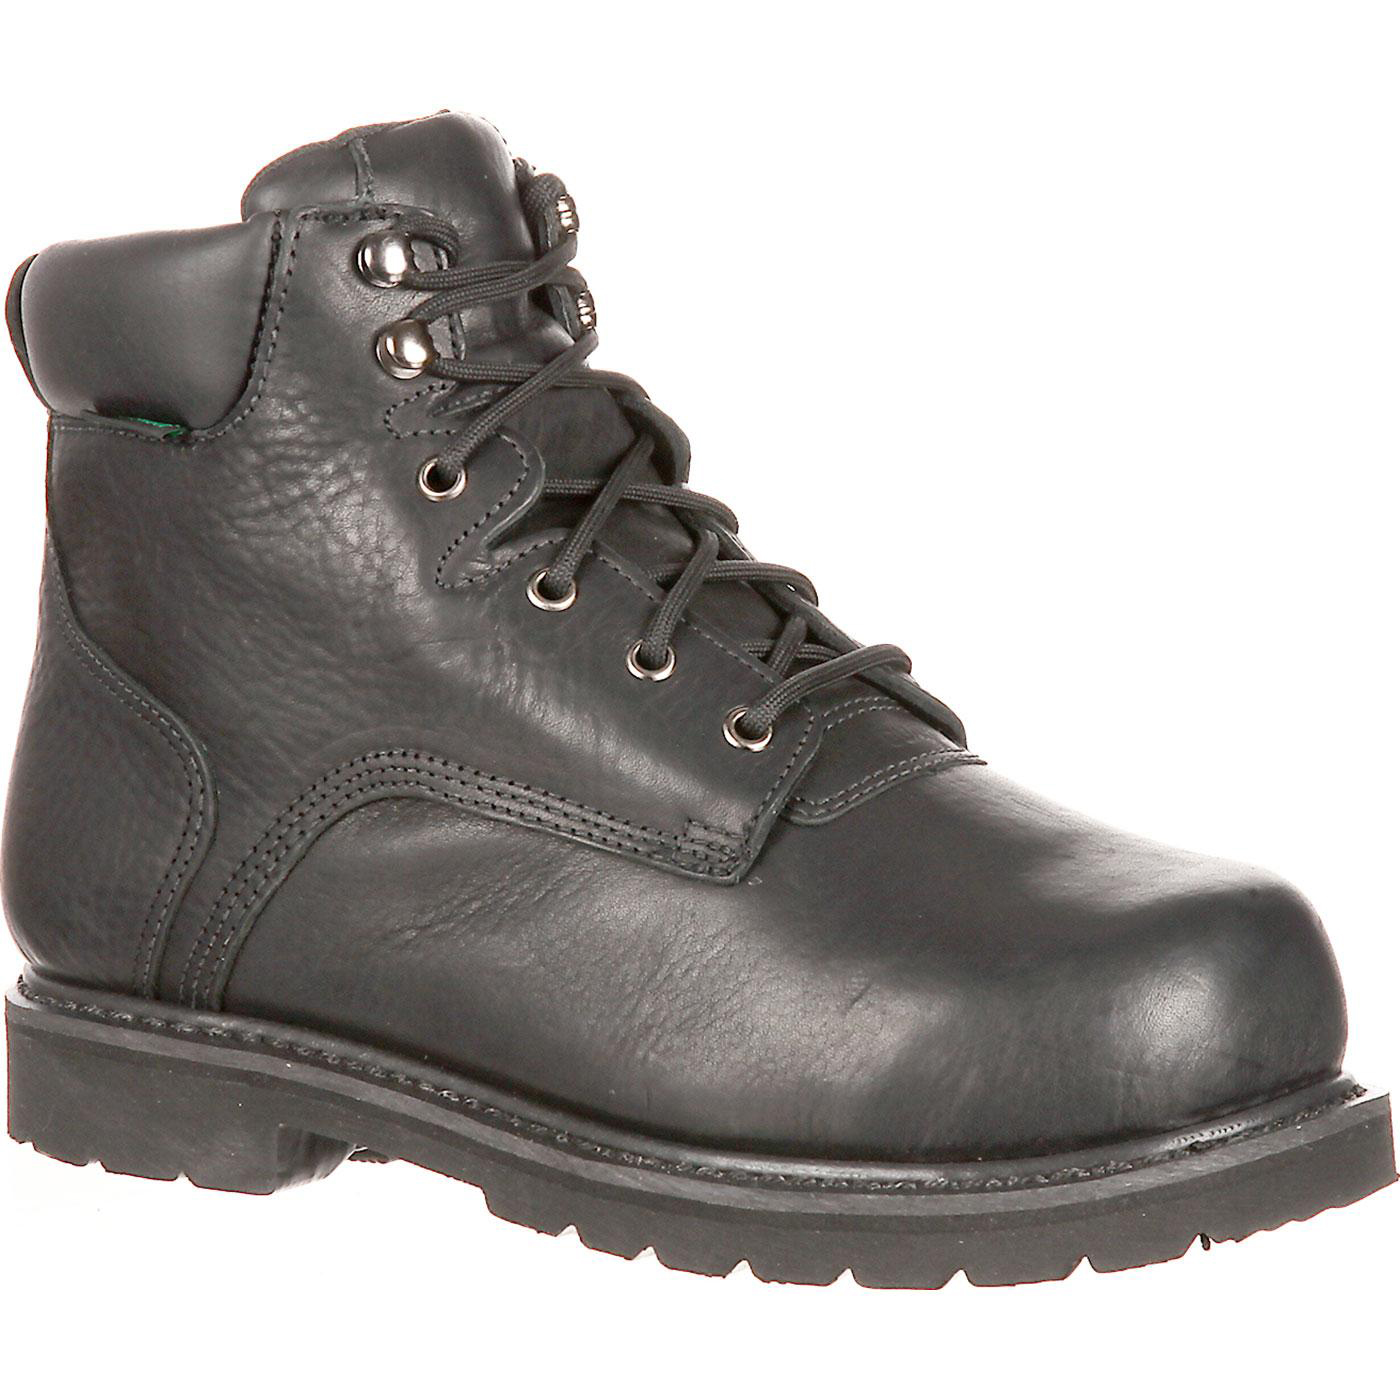 326d52331ca QUICKFIT Collection: Lehigh Safety Shoes Unisex Steel Toe Met Guard  Waterproof Work Boot